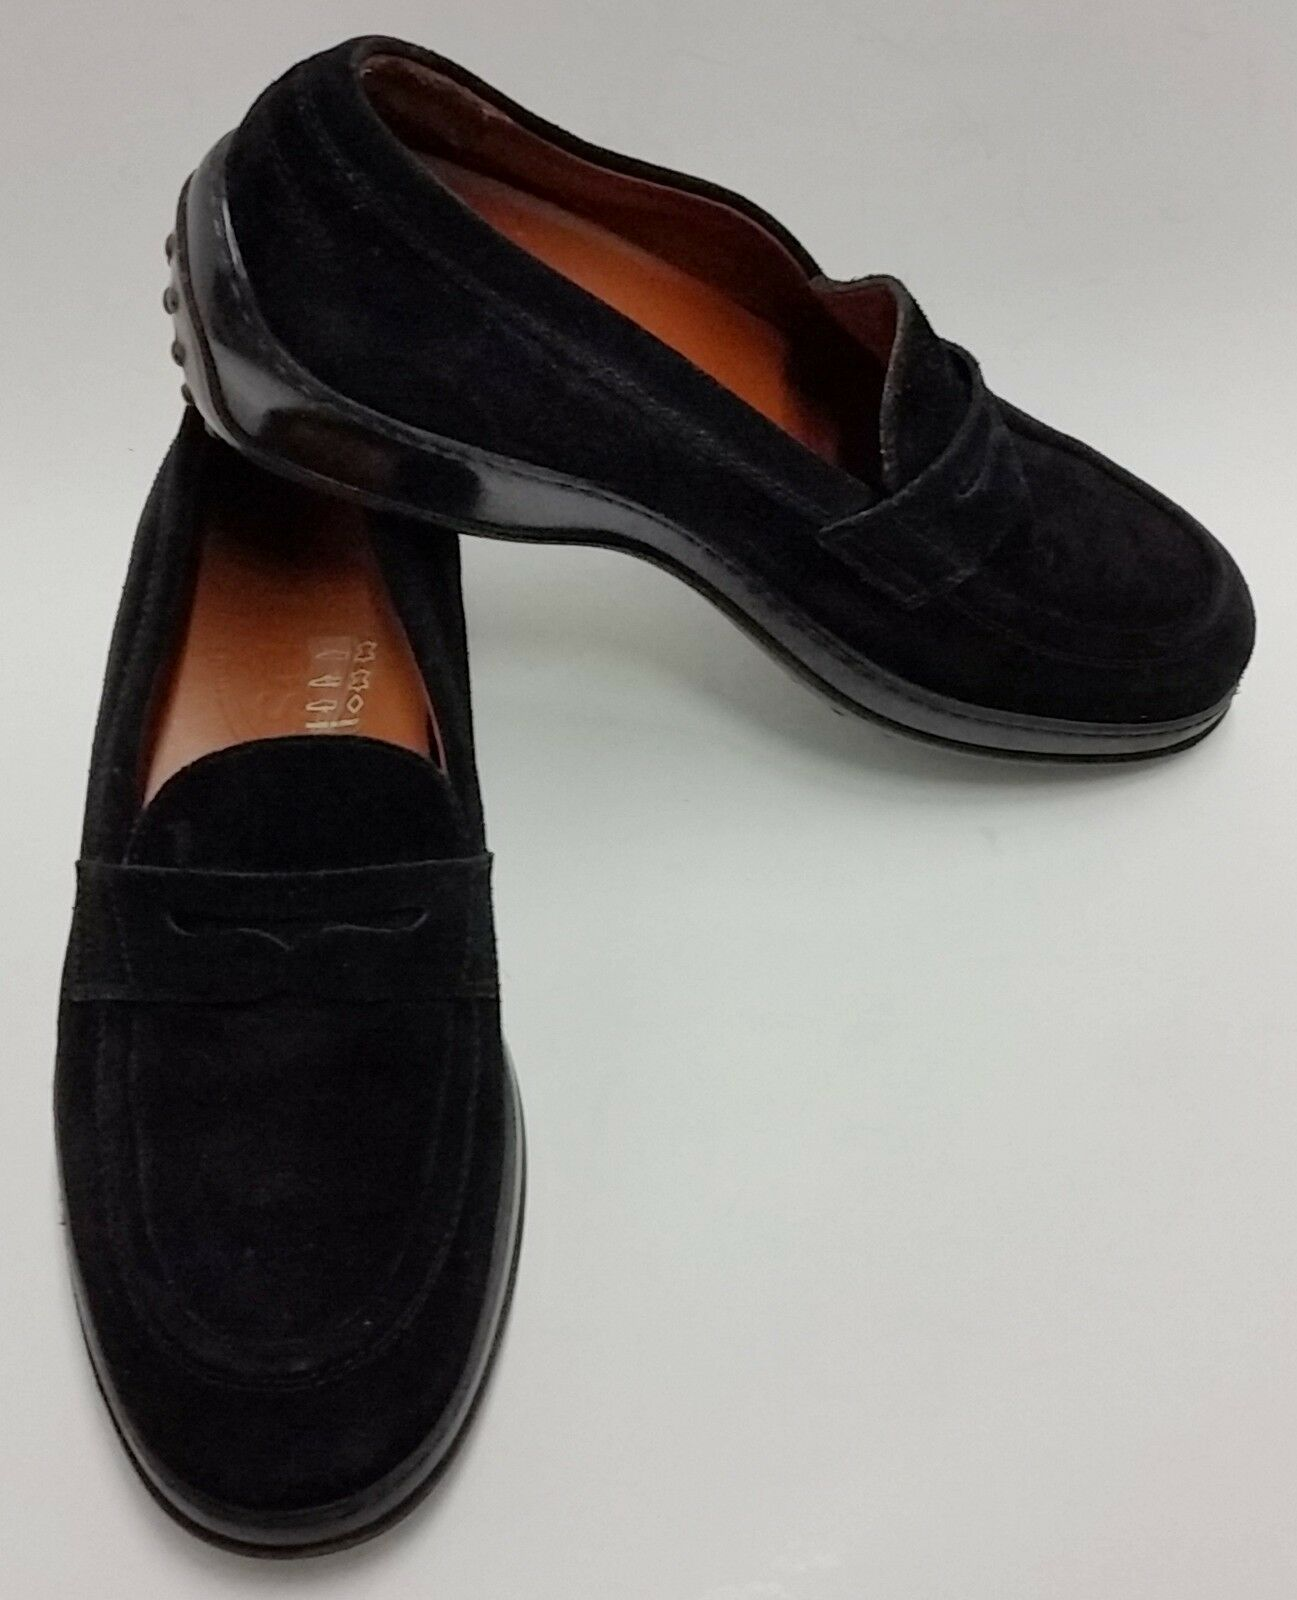 Tods shoes Drivers Loafers Black Slip-On  Womens Size 6.5